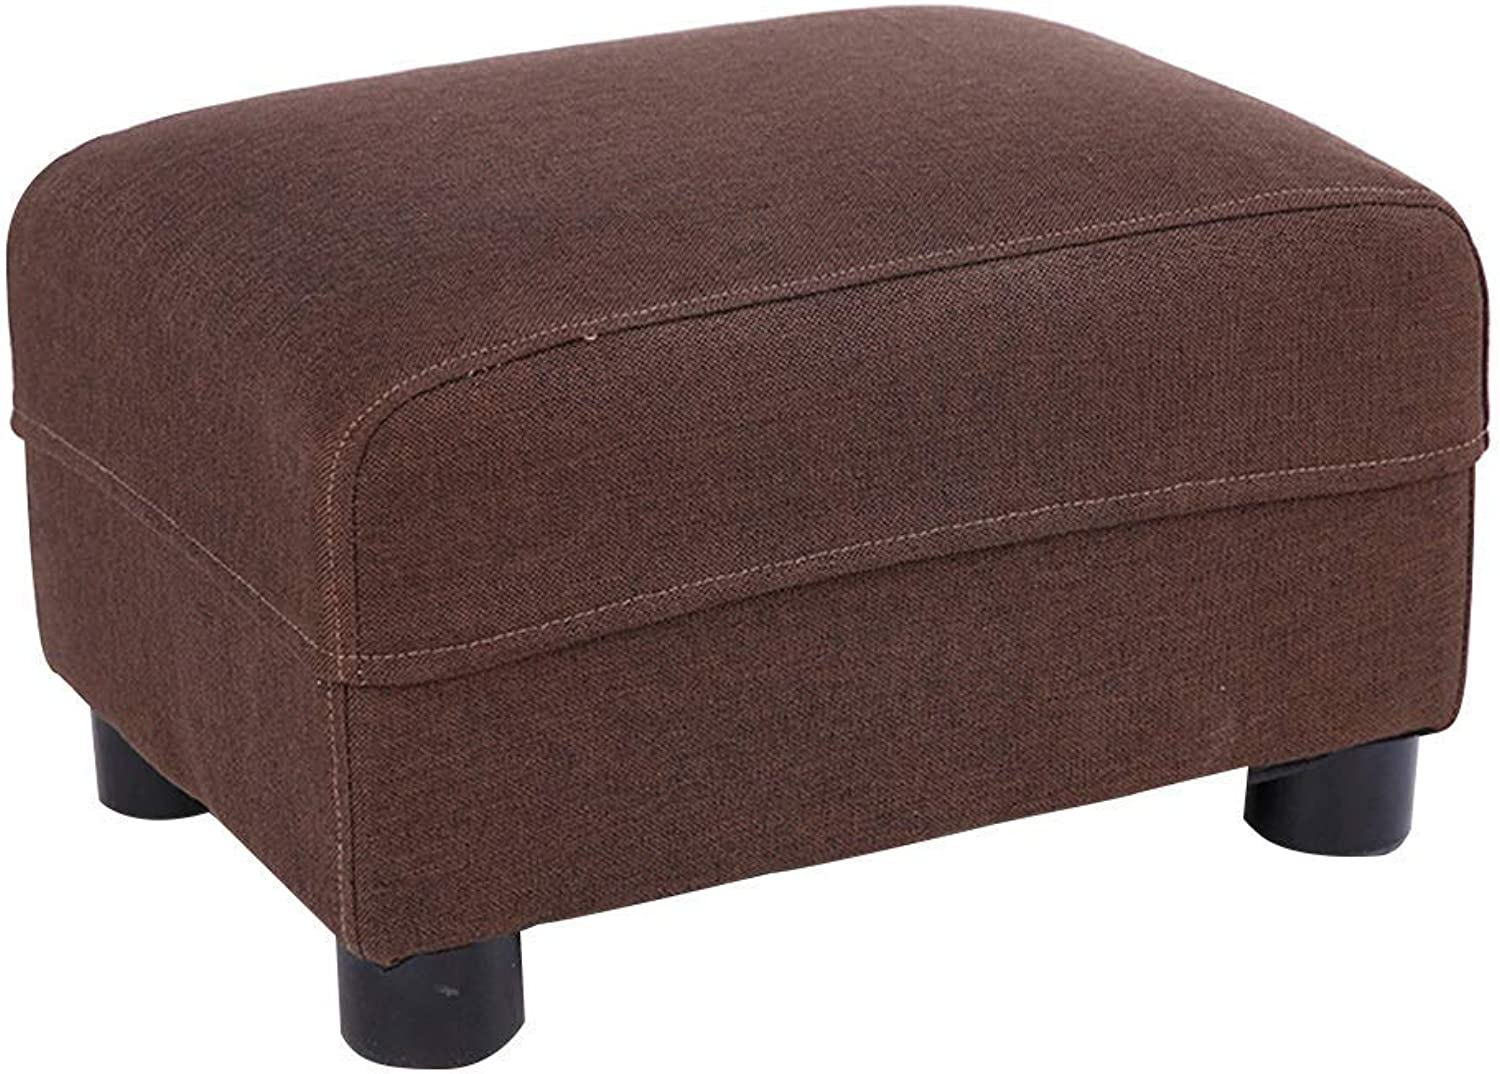 ChenDz Cute Stool Change shoes Stool Sofa Stool Retro Fabric wear shoes Stool Solid Wood feet Nordic Stool Dressing Bed Tail Bench Detachable Linen Living Room Corridor Brown